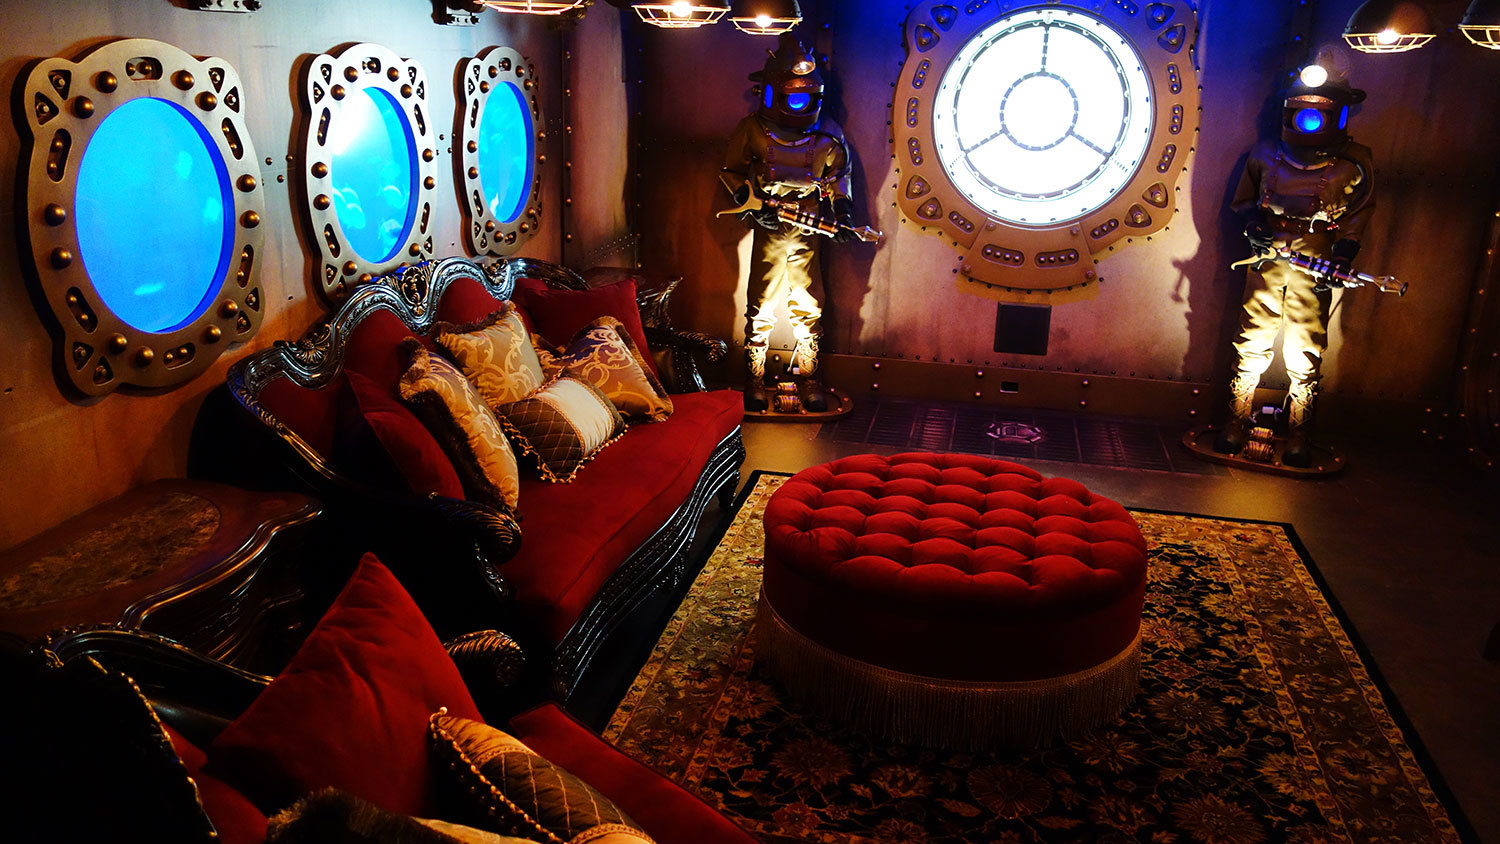 20,000 Leagues Under the Sea Themed Nautical Home Theater